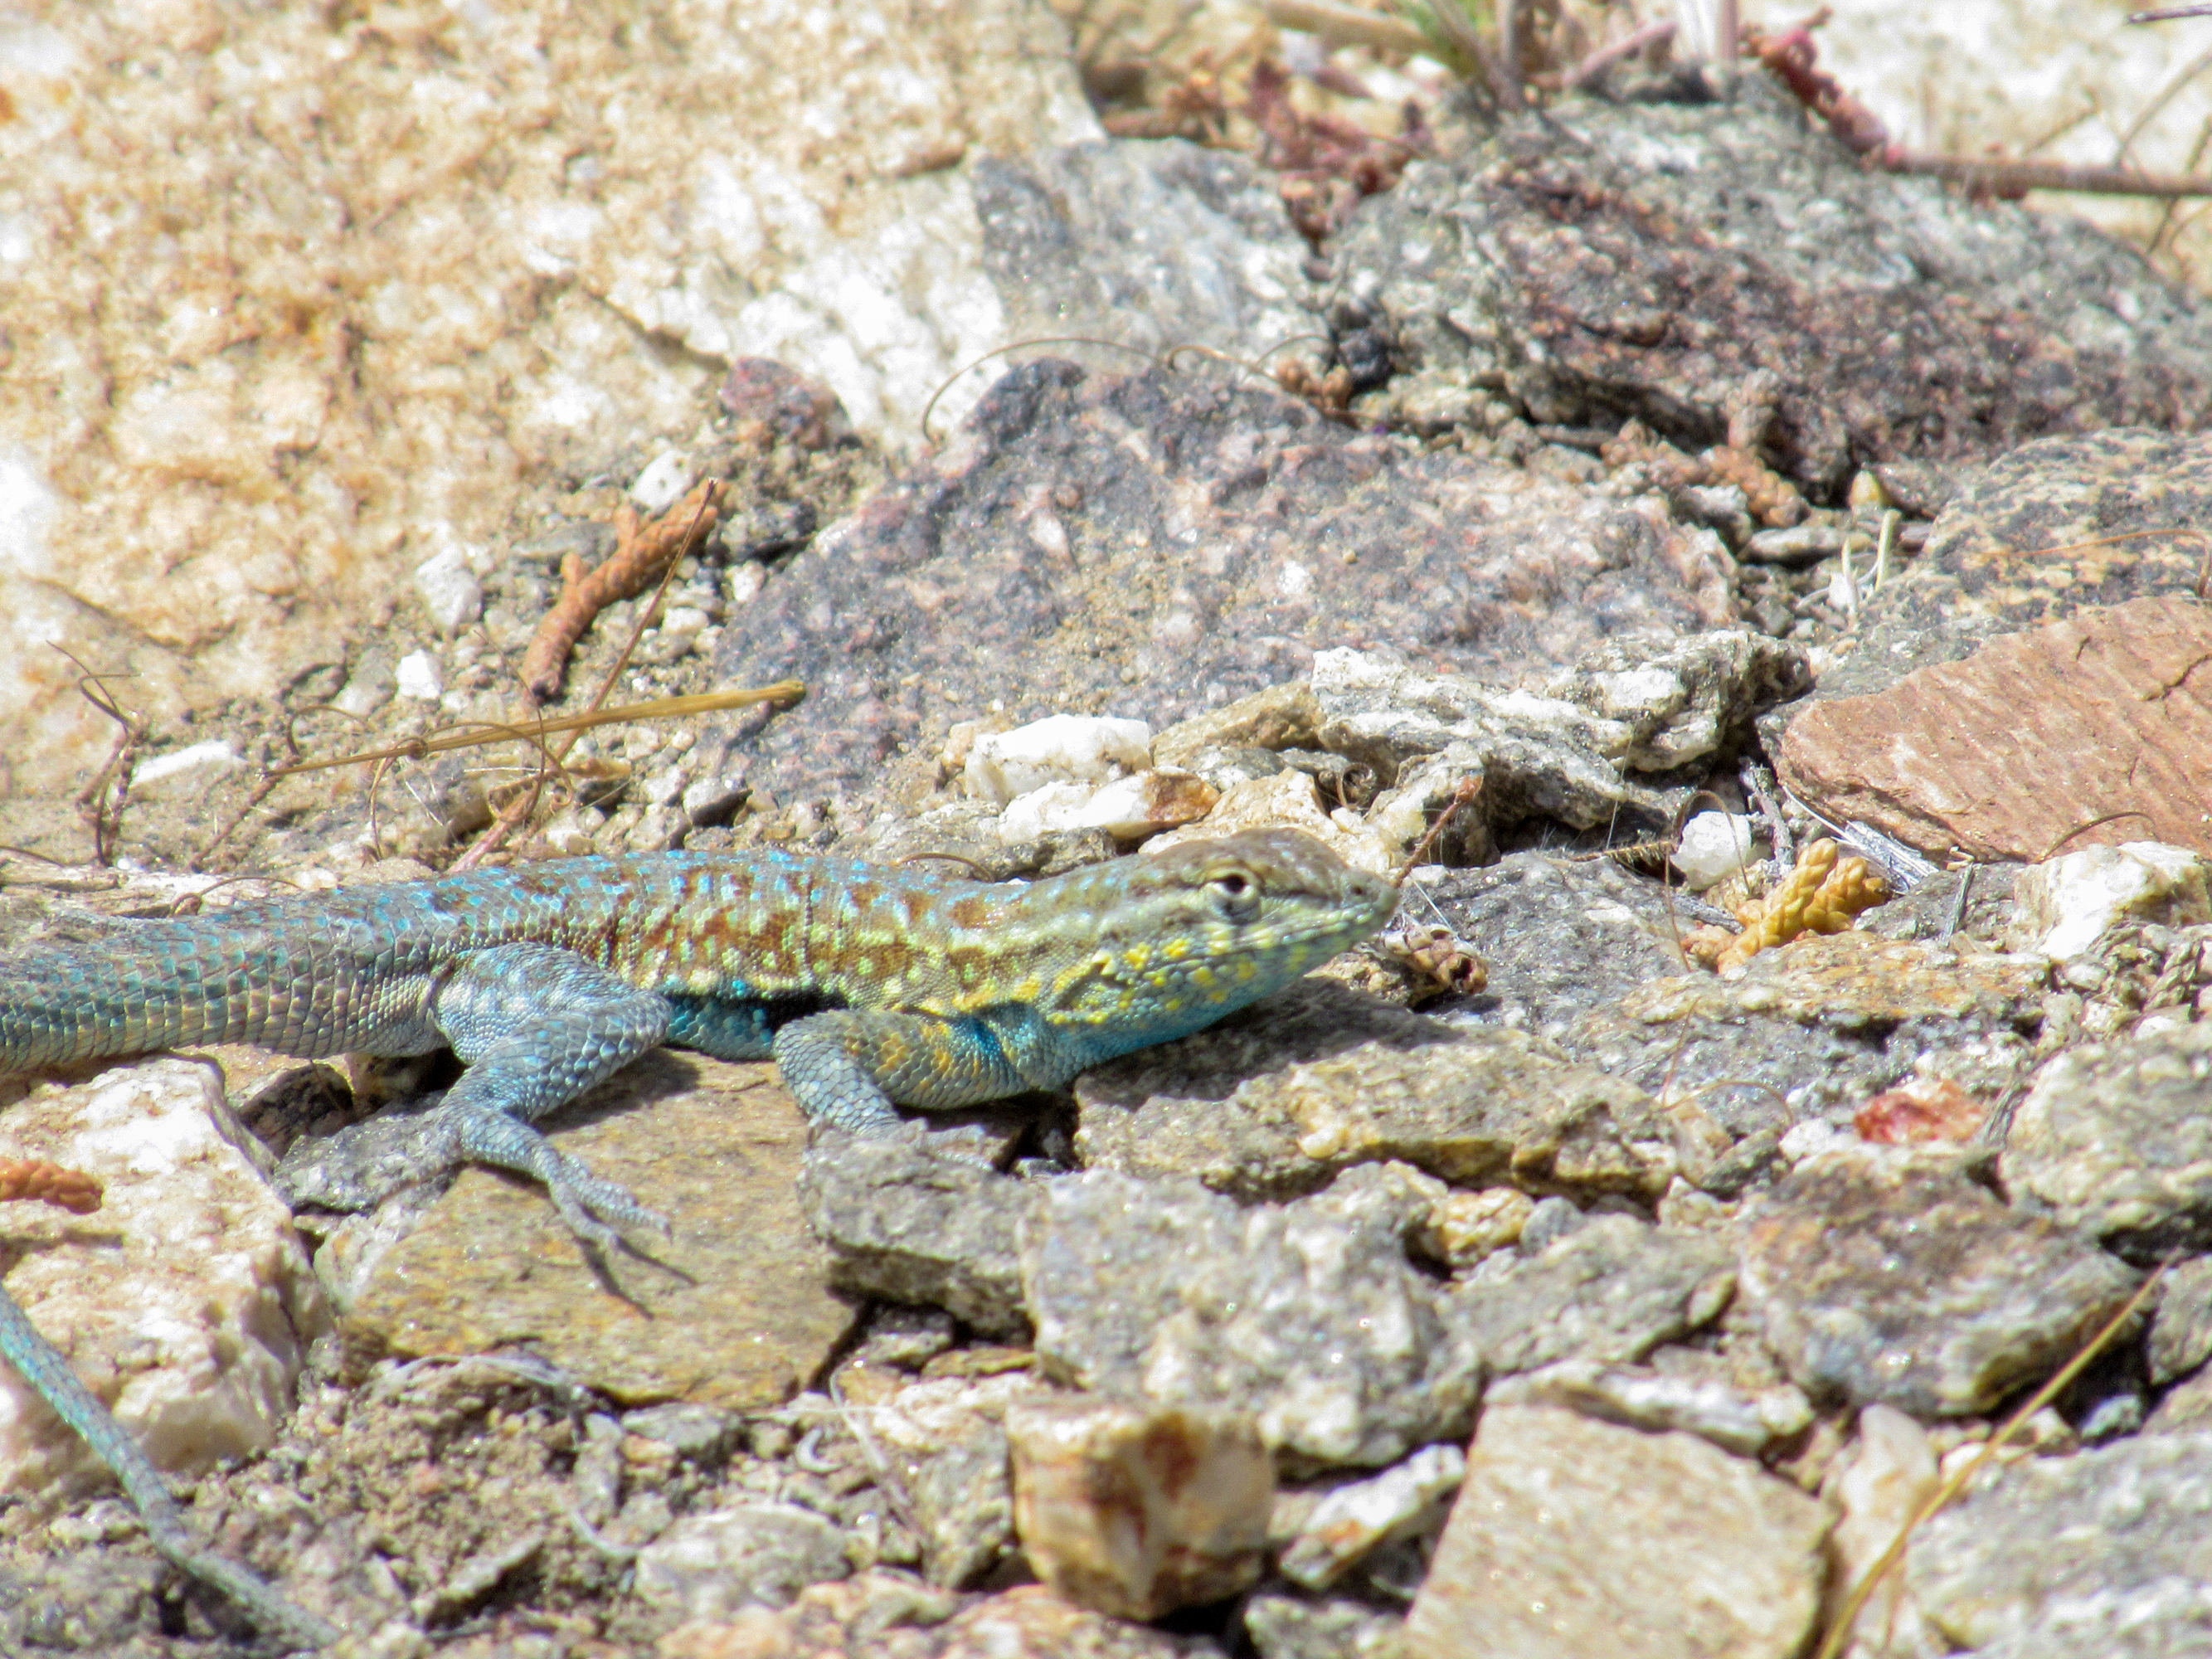 Whiptail lizard with yellow and blue markings.